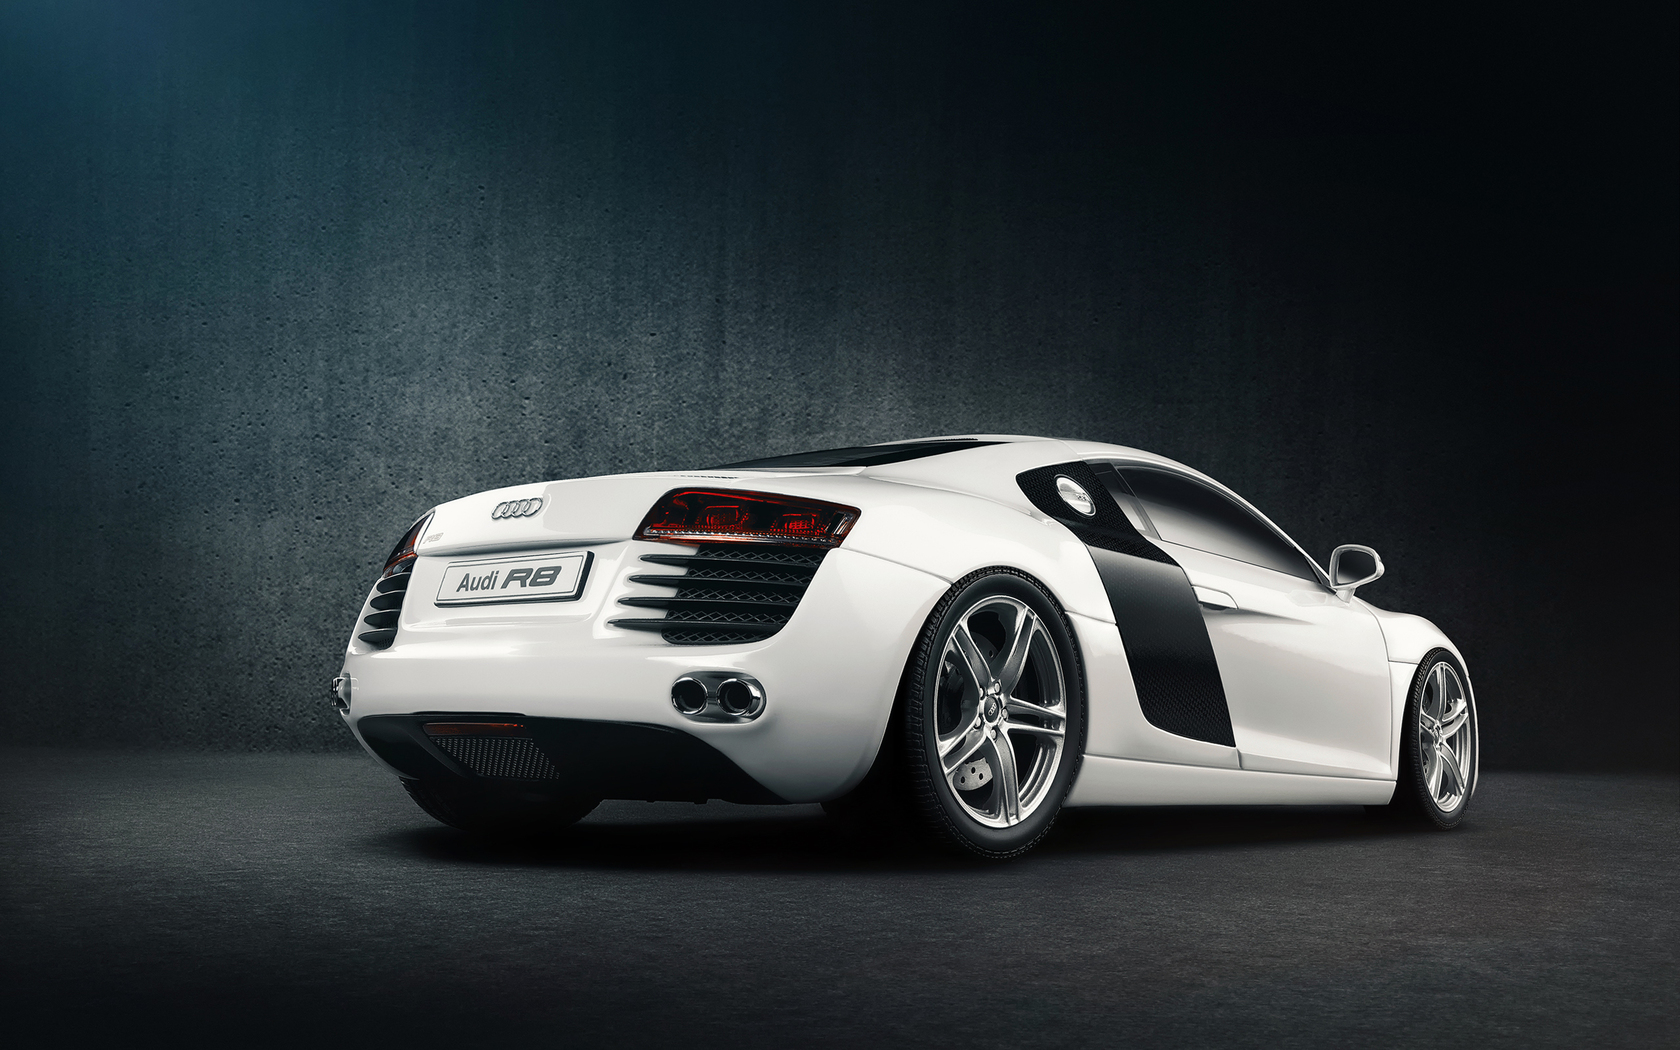 High Resolution Audi R8 Wallpaper PC 14456 Wallpaper Wallpaper 1680x1050